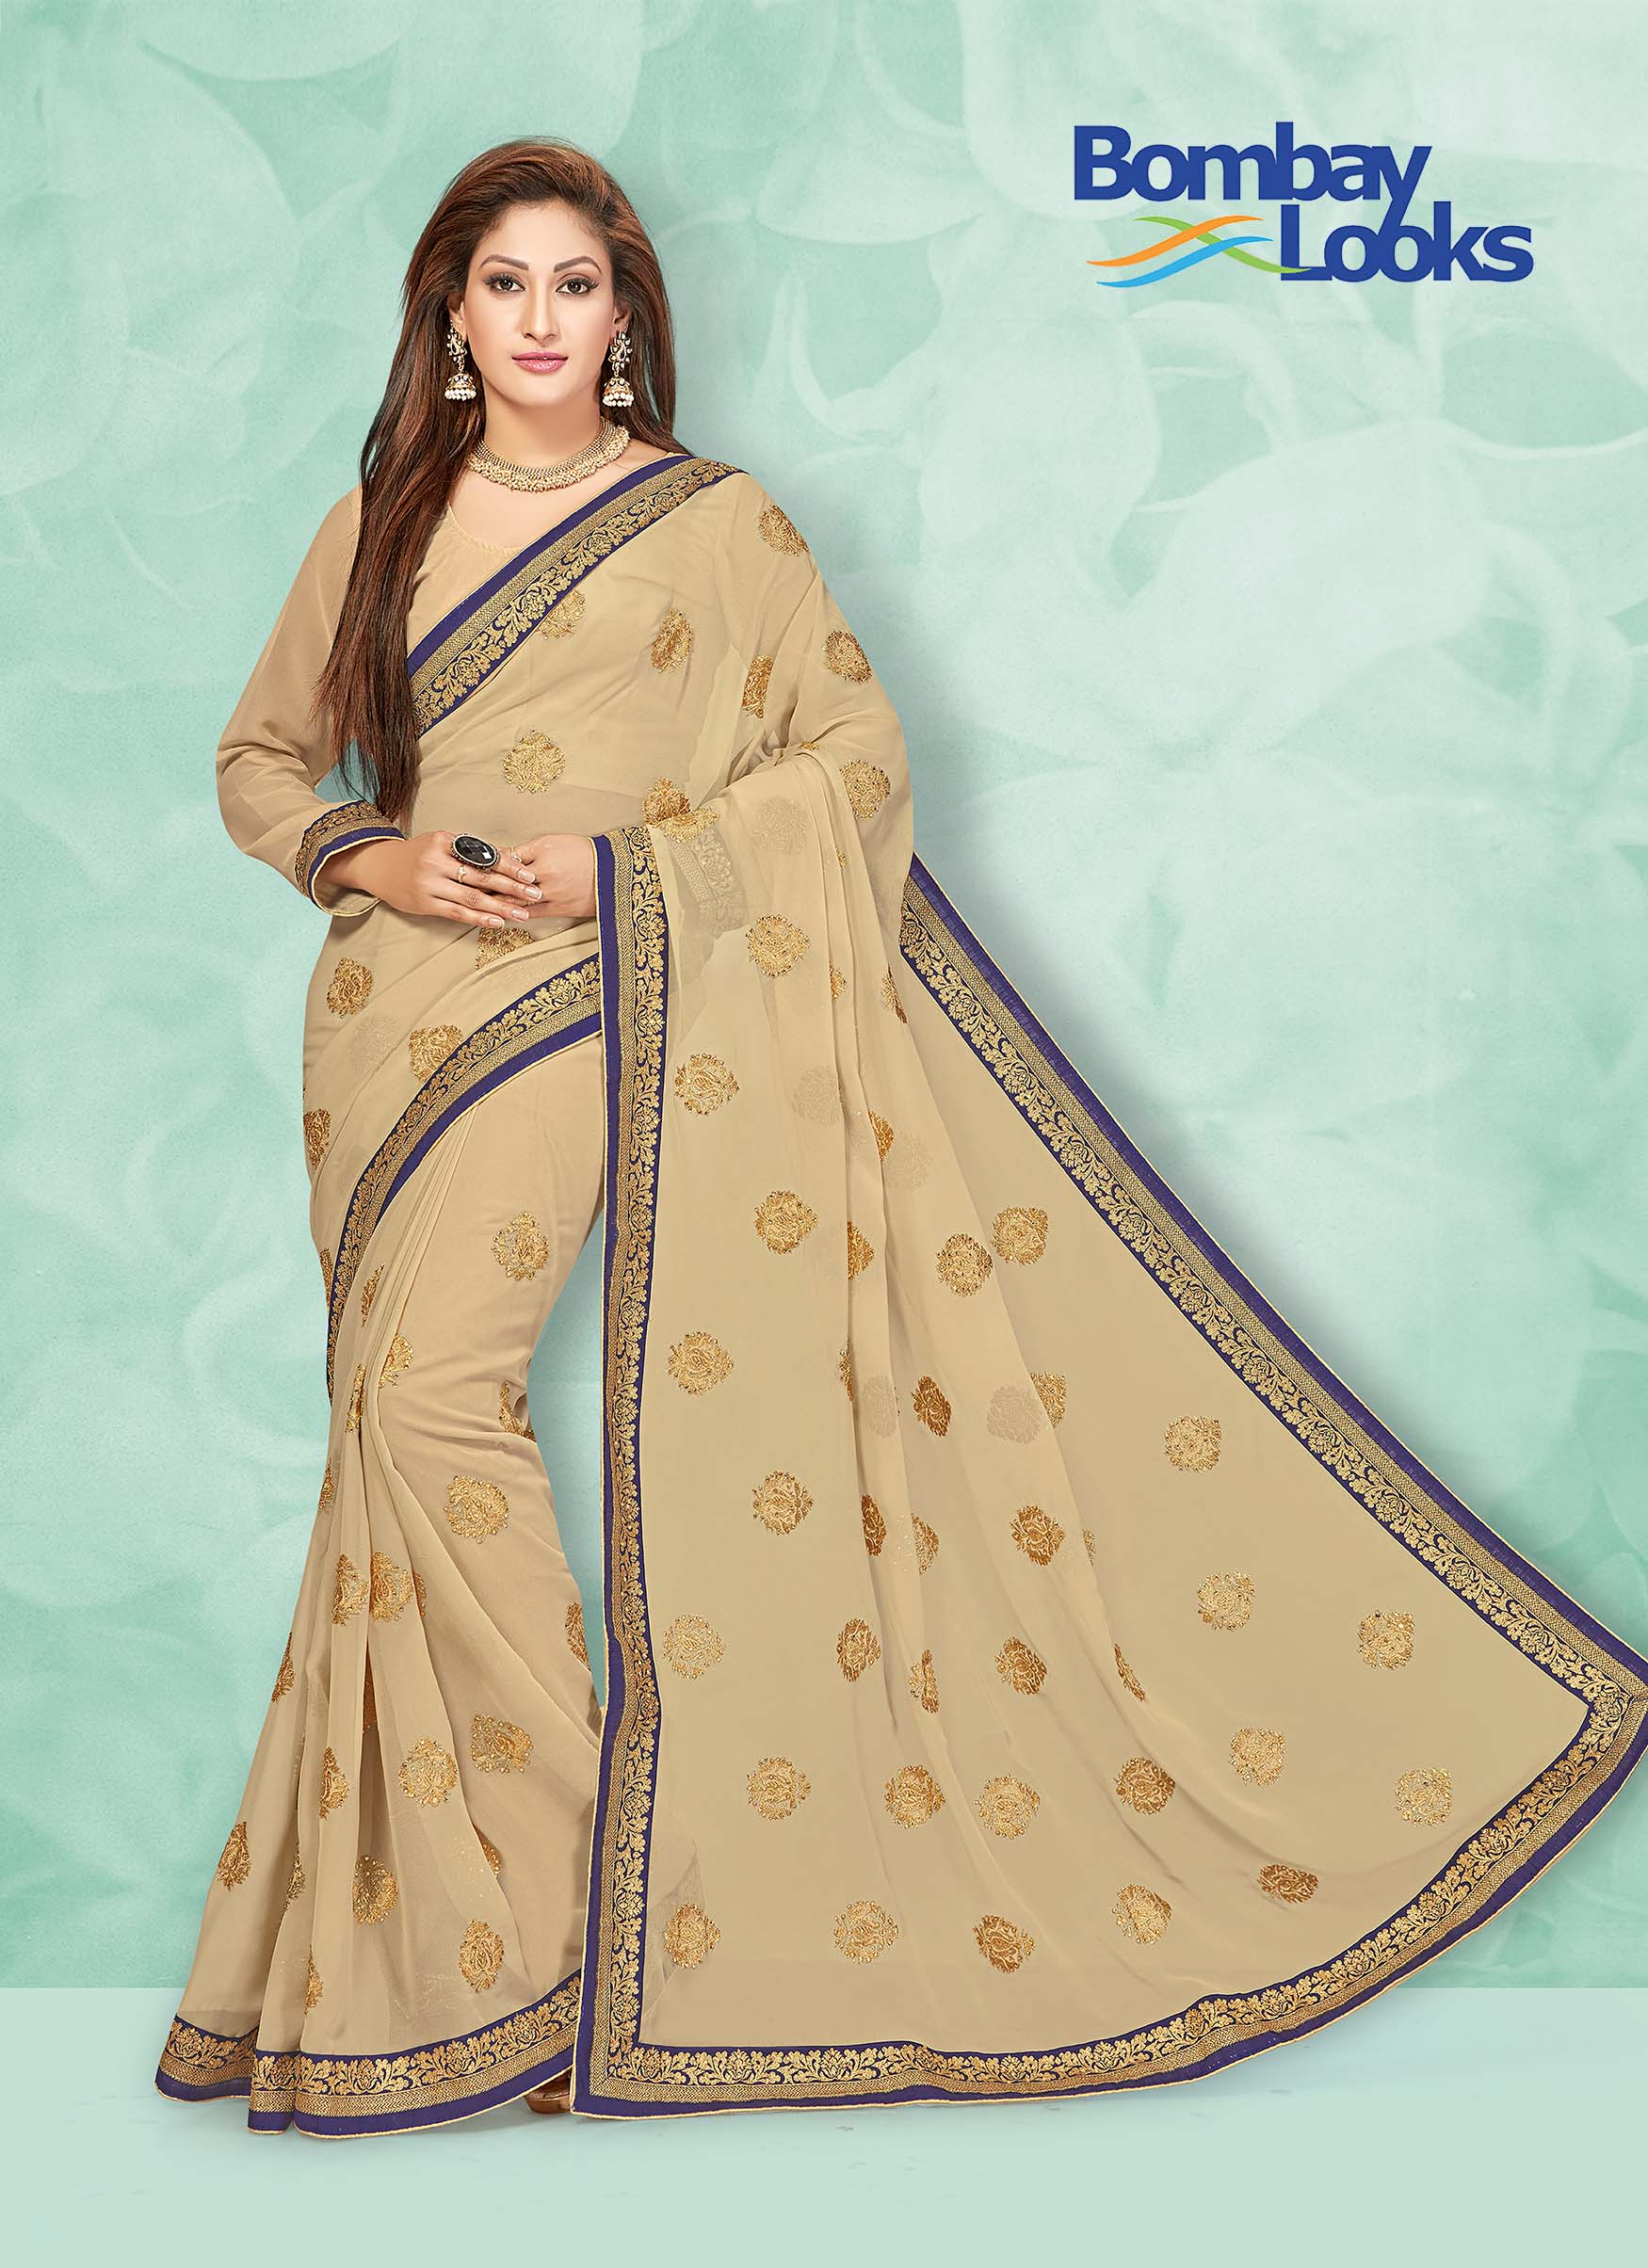 Georgette saree in gold with matching blouse